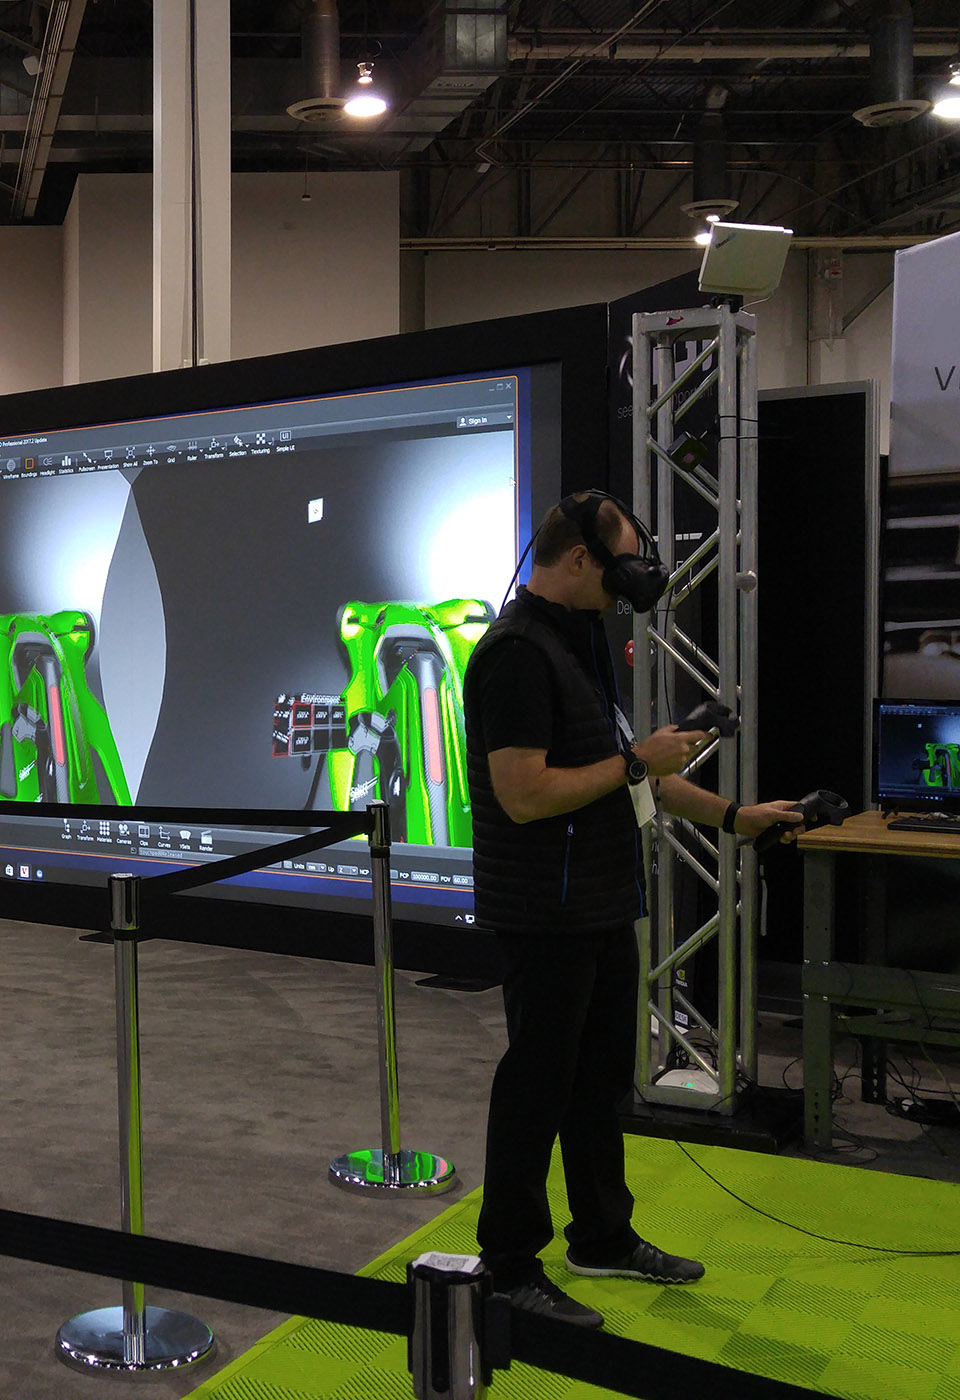 IGI demo of head mounted display VR at Autodesk University